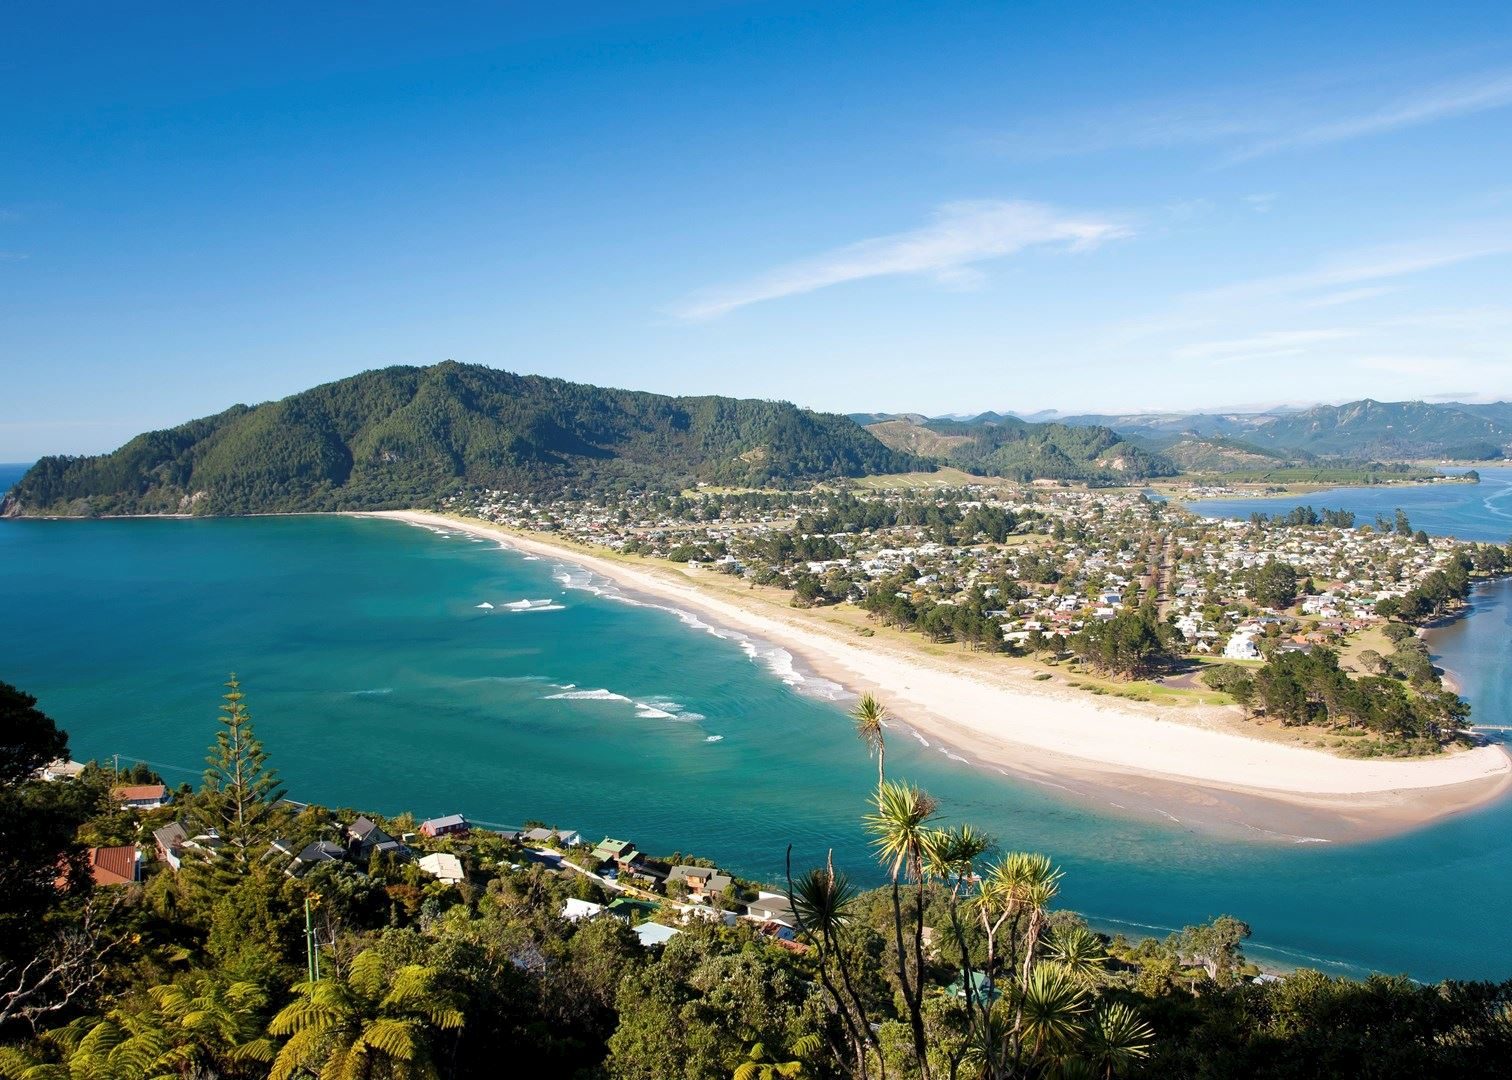 New Zealanders Bury Heads In Sand Just Like Their Government On Climate Change moreover Location also Our Region together with File Scrub Island Resort  Spa  26 Marina as well Coromandel Peninsula. on waiheke island